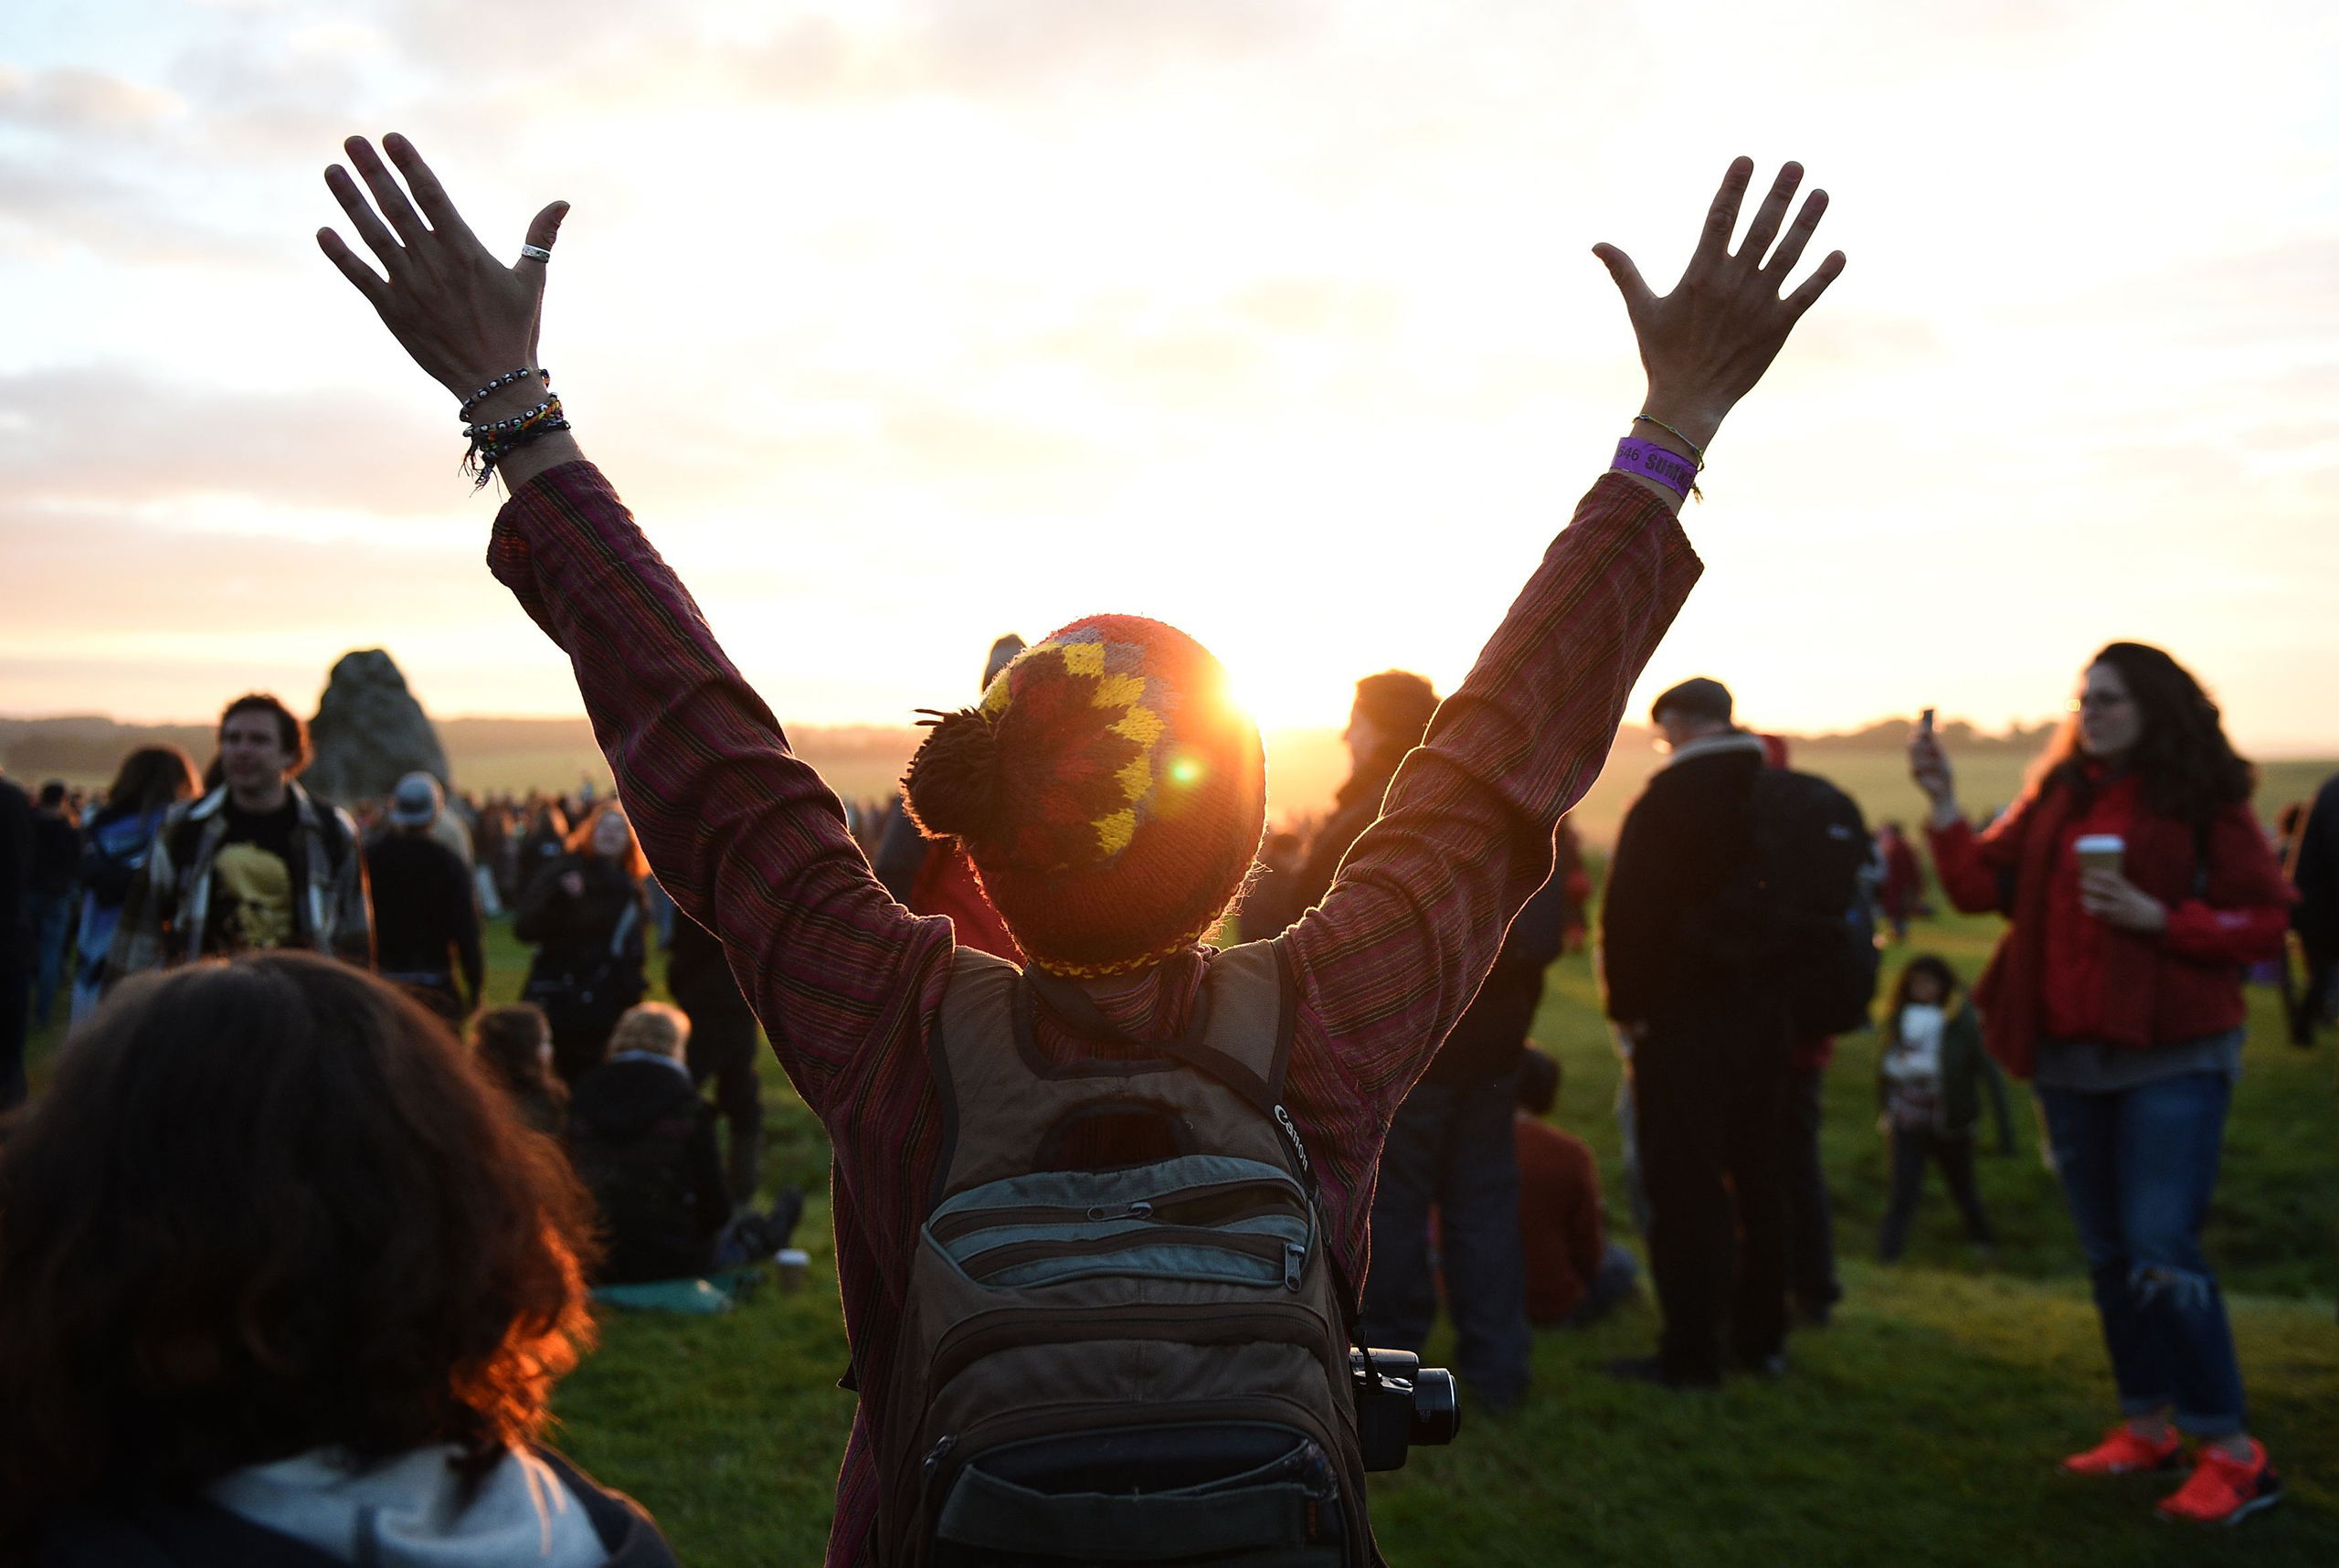 People watch the sun rise at Stonehenge in Wiltshire as they see in the new dawn during this year's Summer Solstice, June 21, 2016.